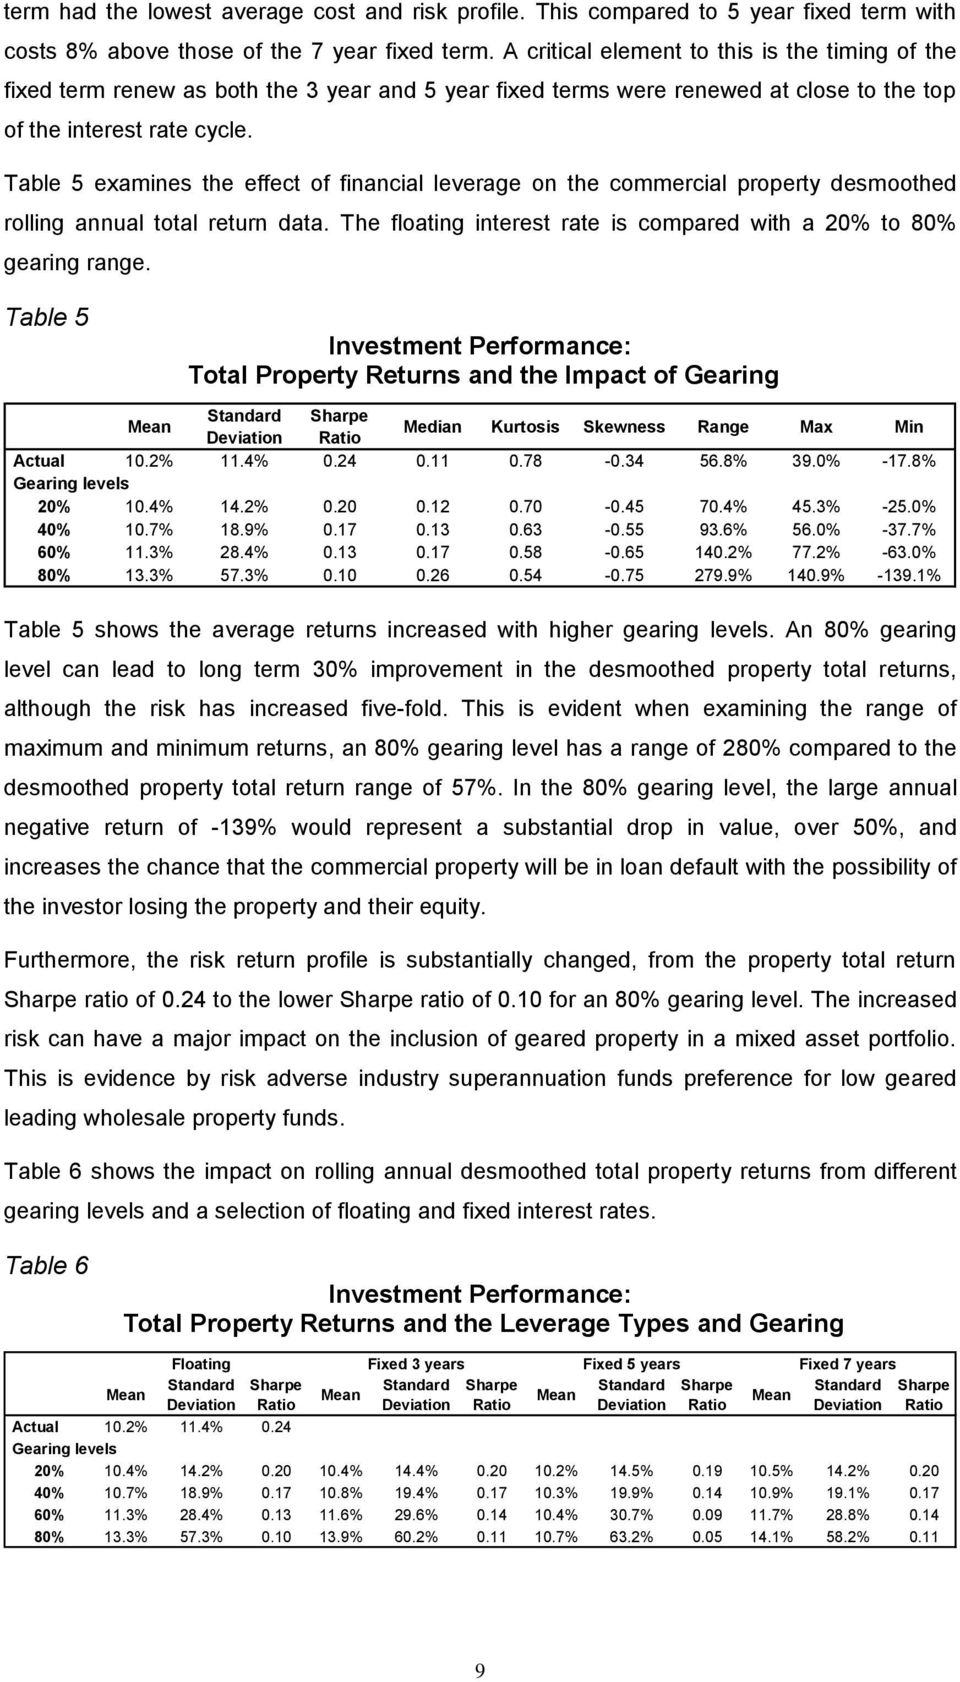 Table 5 examines the effect of financial leverage on the commercial property desmoothed rolling annual total return data. The floating interest rate is compared with a 20% to 80% gearing range.